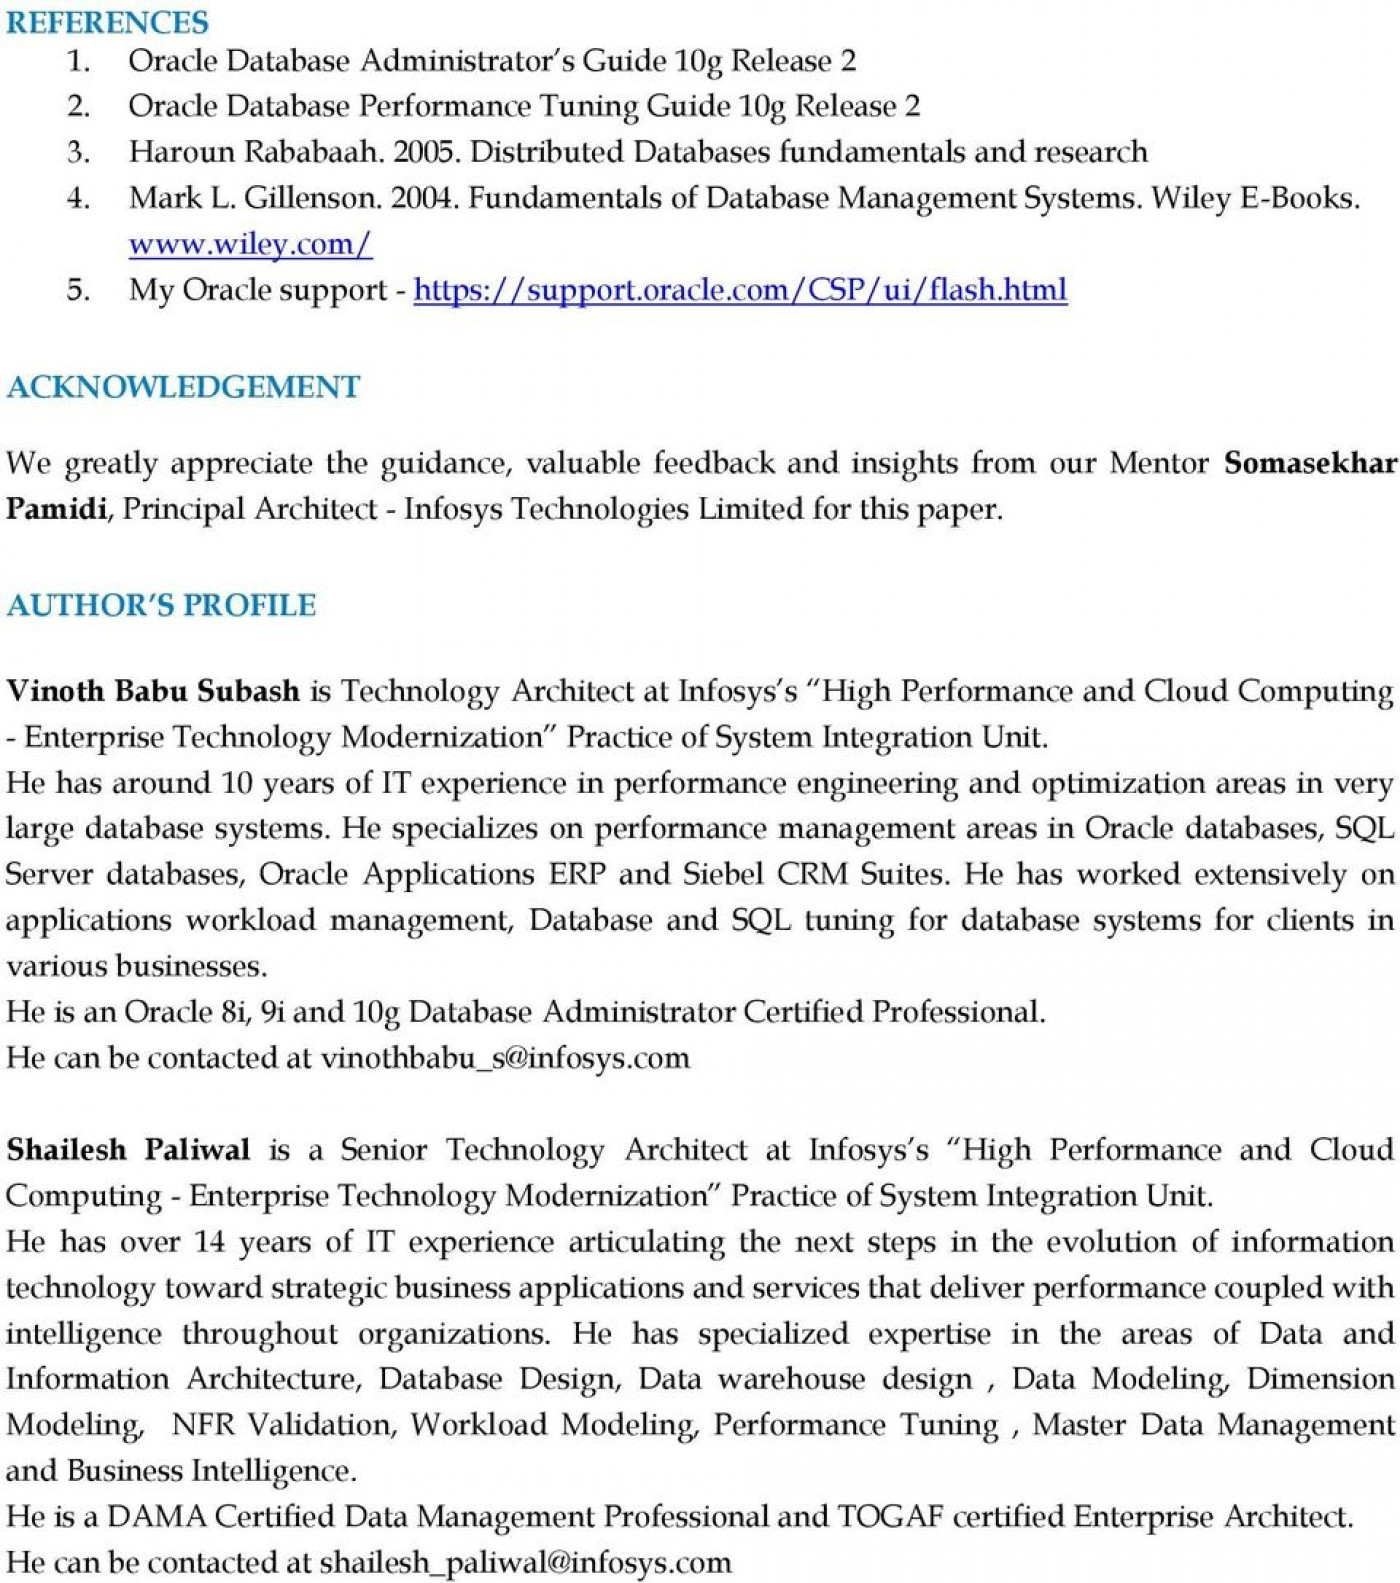 019 Database Research Paper Page 14 Phenomenal Security Design Topics Ieee 1400